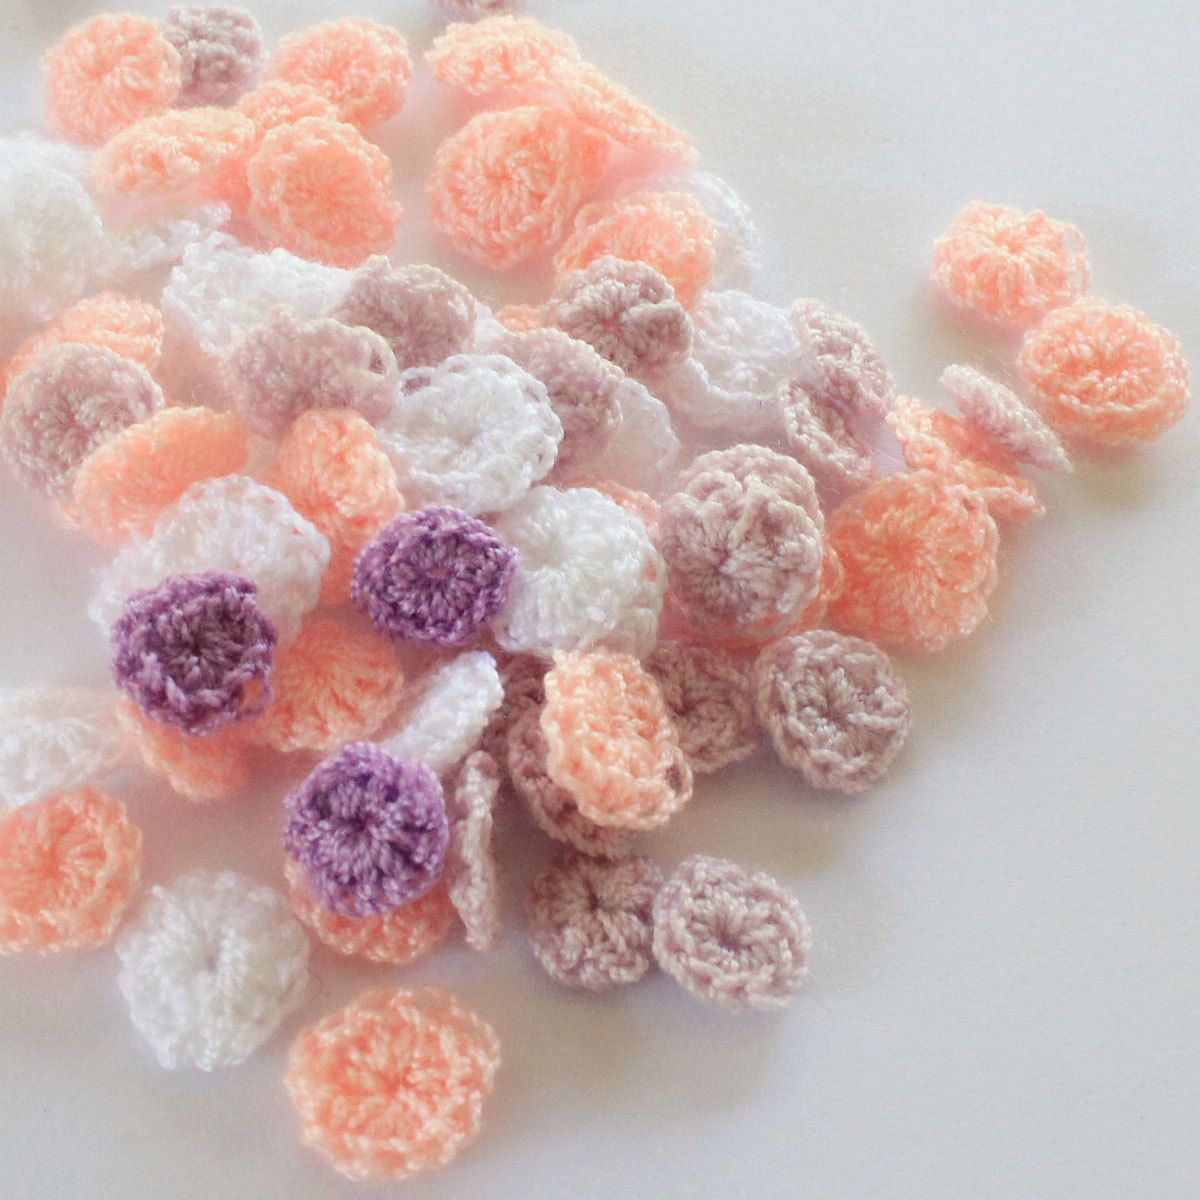 small sweet circle  hand made  circle  crochet ,1 cm,  30 pcs, flowers, yarns,pale orange,brown,white by TheThailand on Etsy